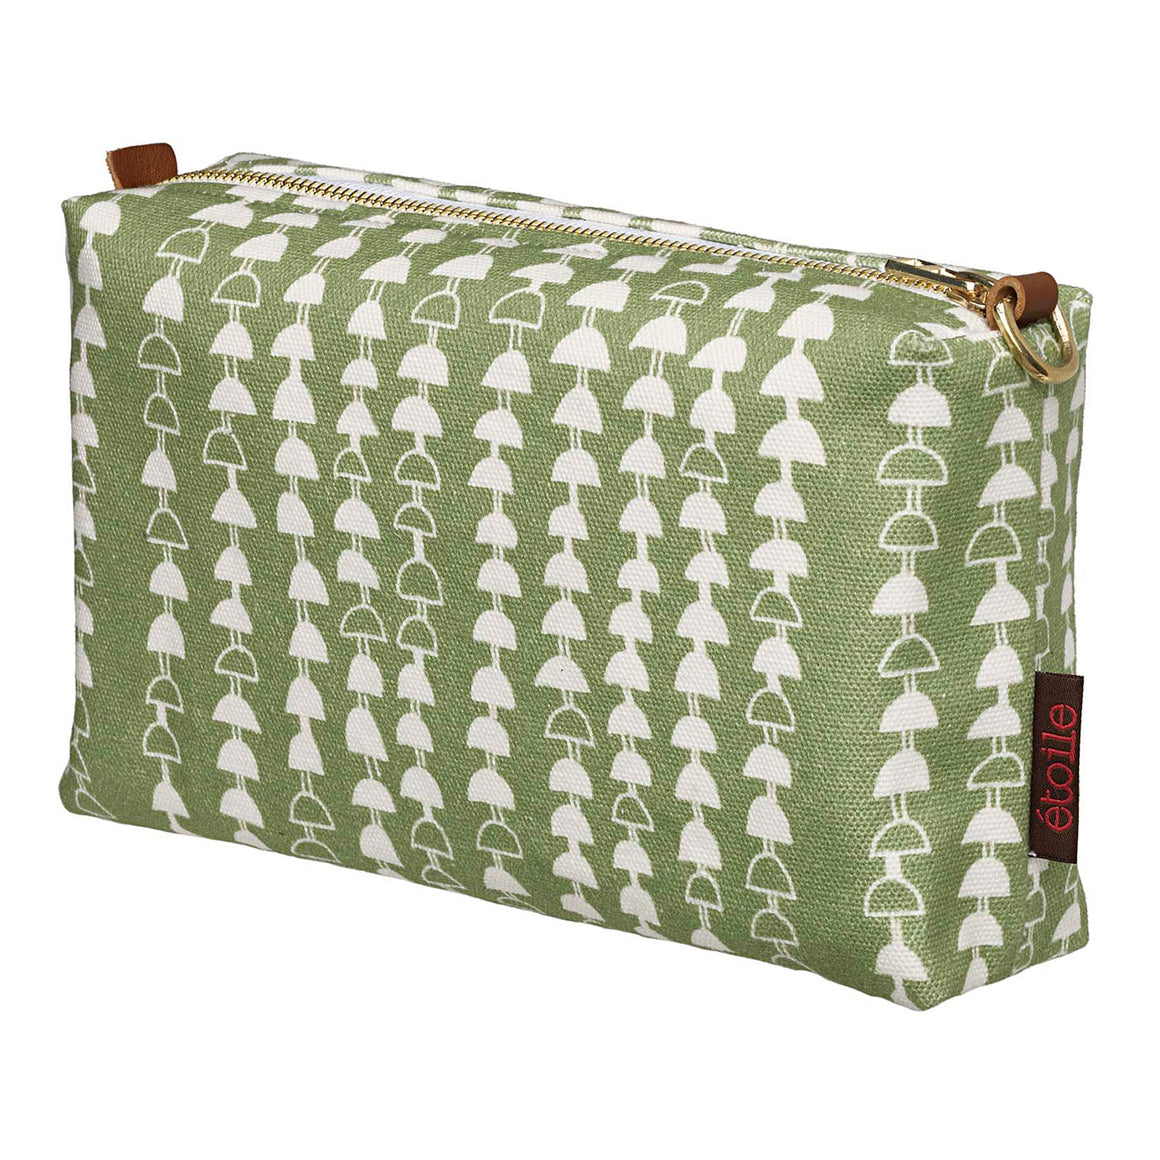 Hopi Graphic Pattern Canvas Toiletry Travel Bag in Light Avocado Green Ships from Canada Perfect for cosmetics, wash and shaving kit